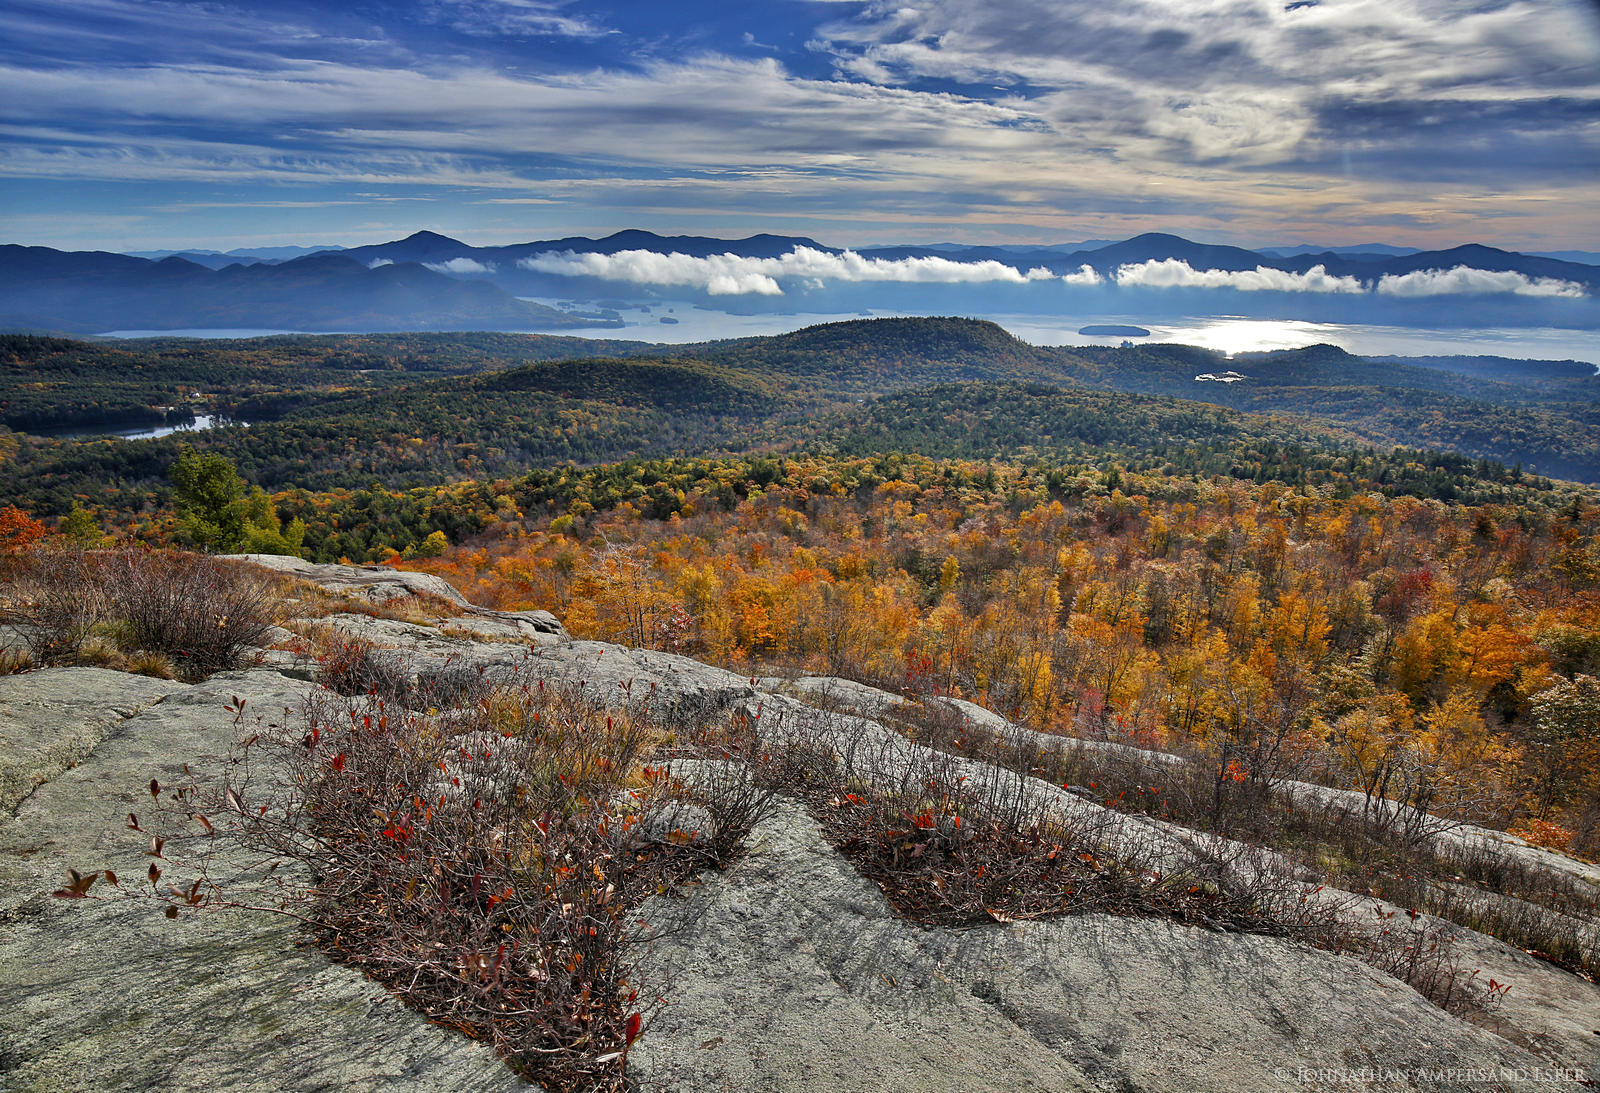 Cat Mountain,Cat Mt,Cat and Thomas Mountain Preserve,Lake George Land Conservancy,Cat Mt summit,summit,Lake George,valley fog,fog,Johnathan Esper,autumn,fall,Adirondacks,Adirondack Park, photo